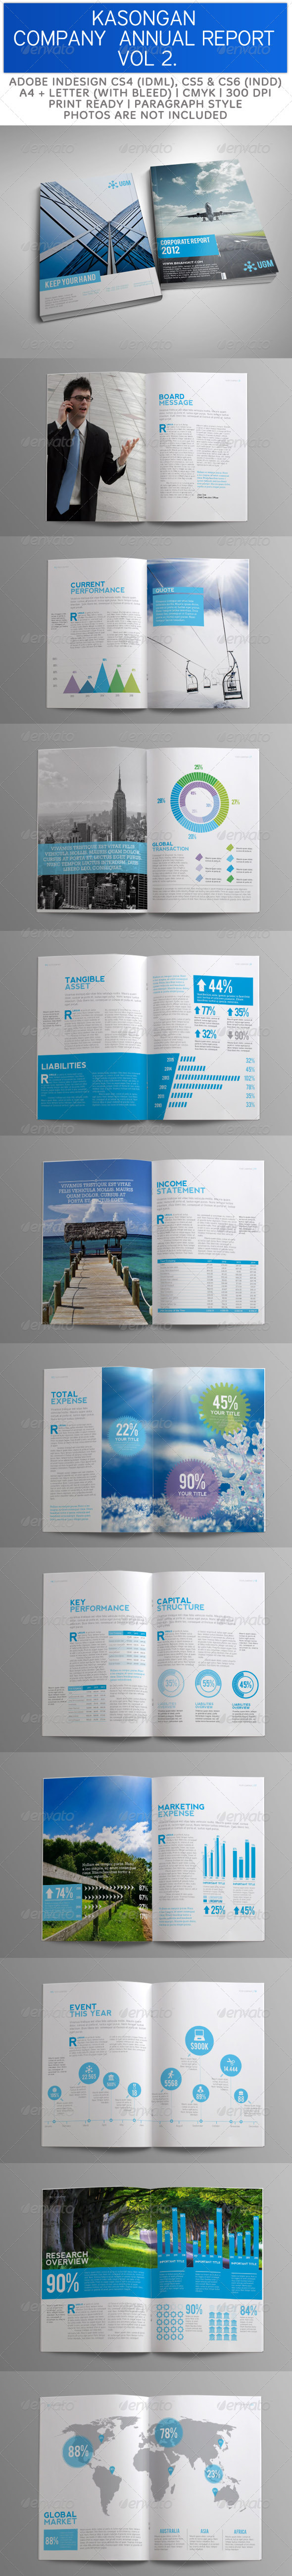 GraphicRiver Kasongan Company Annual Report Volume 2 3675850